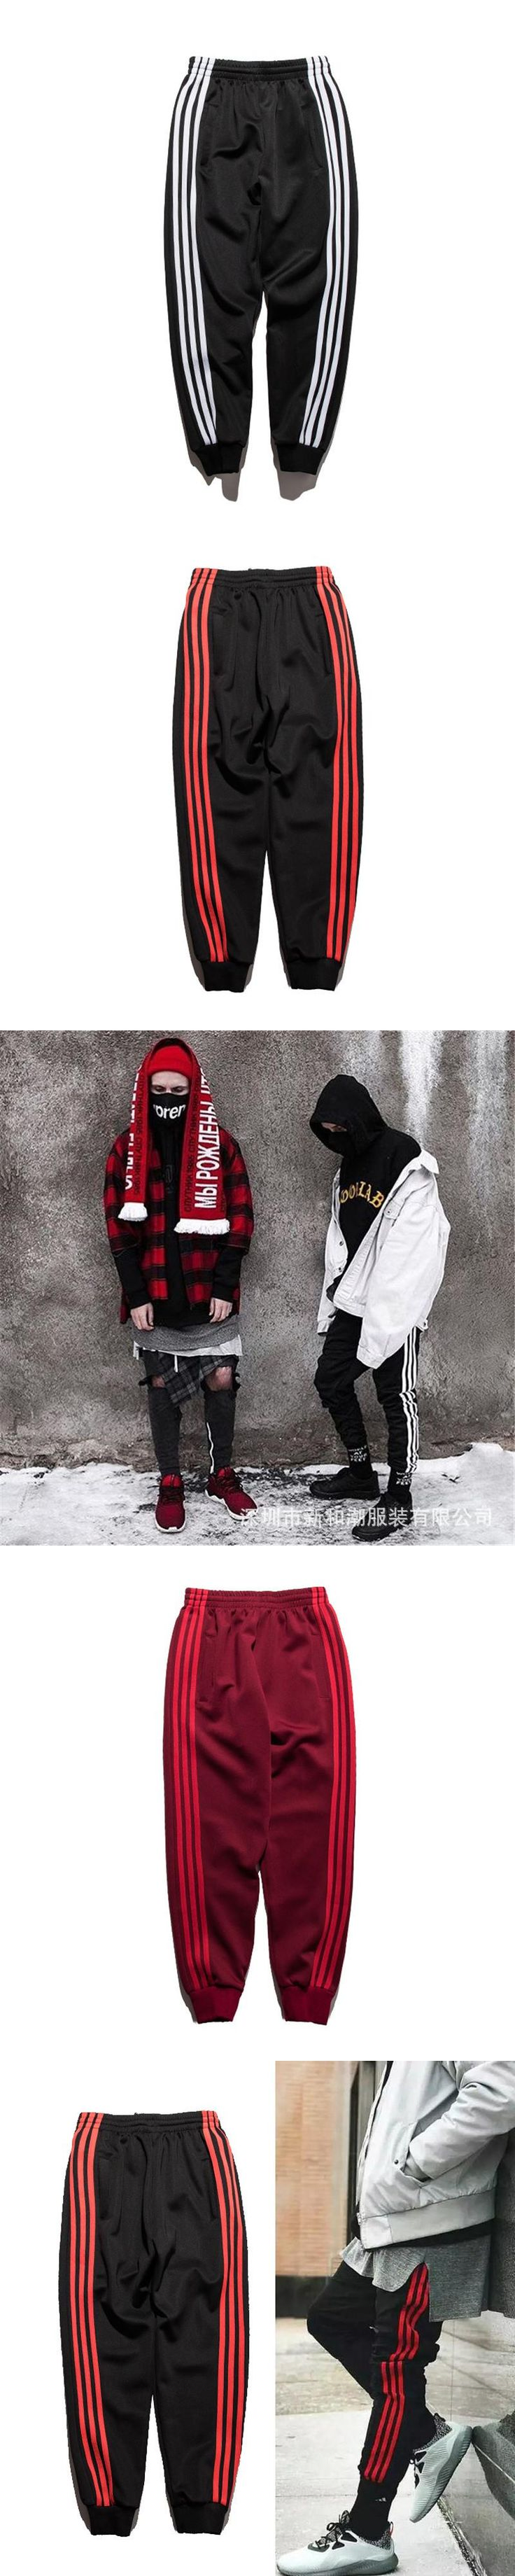 2017 Fashion BIG FOR SAM Three-stripes Jogger Pants Soft Material Casual Trousers Streetwear TXX Men Hip Hop Clothing Asian Size